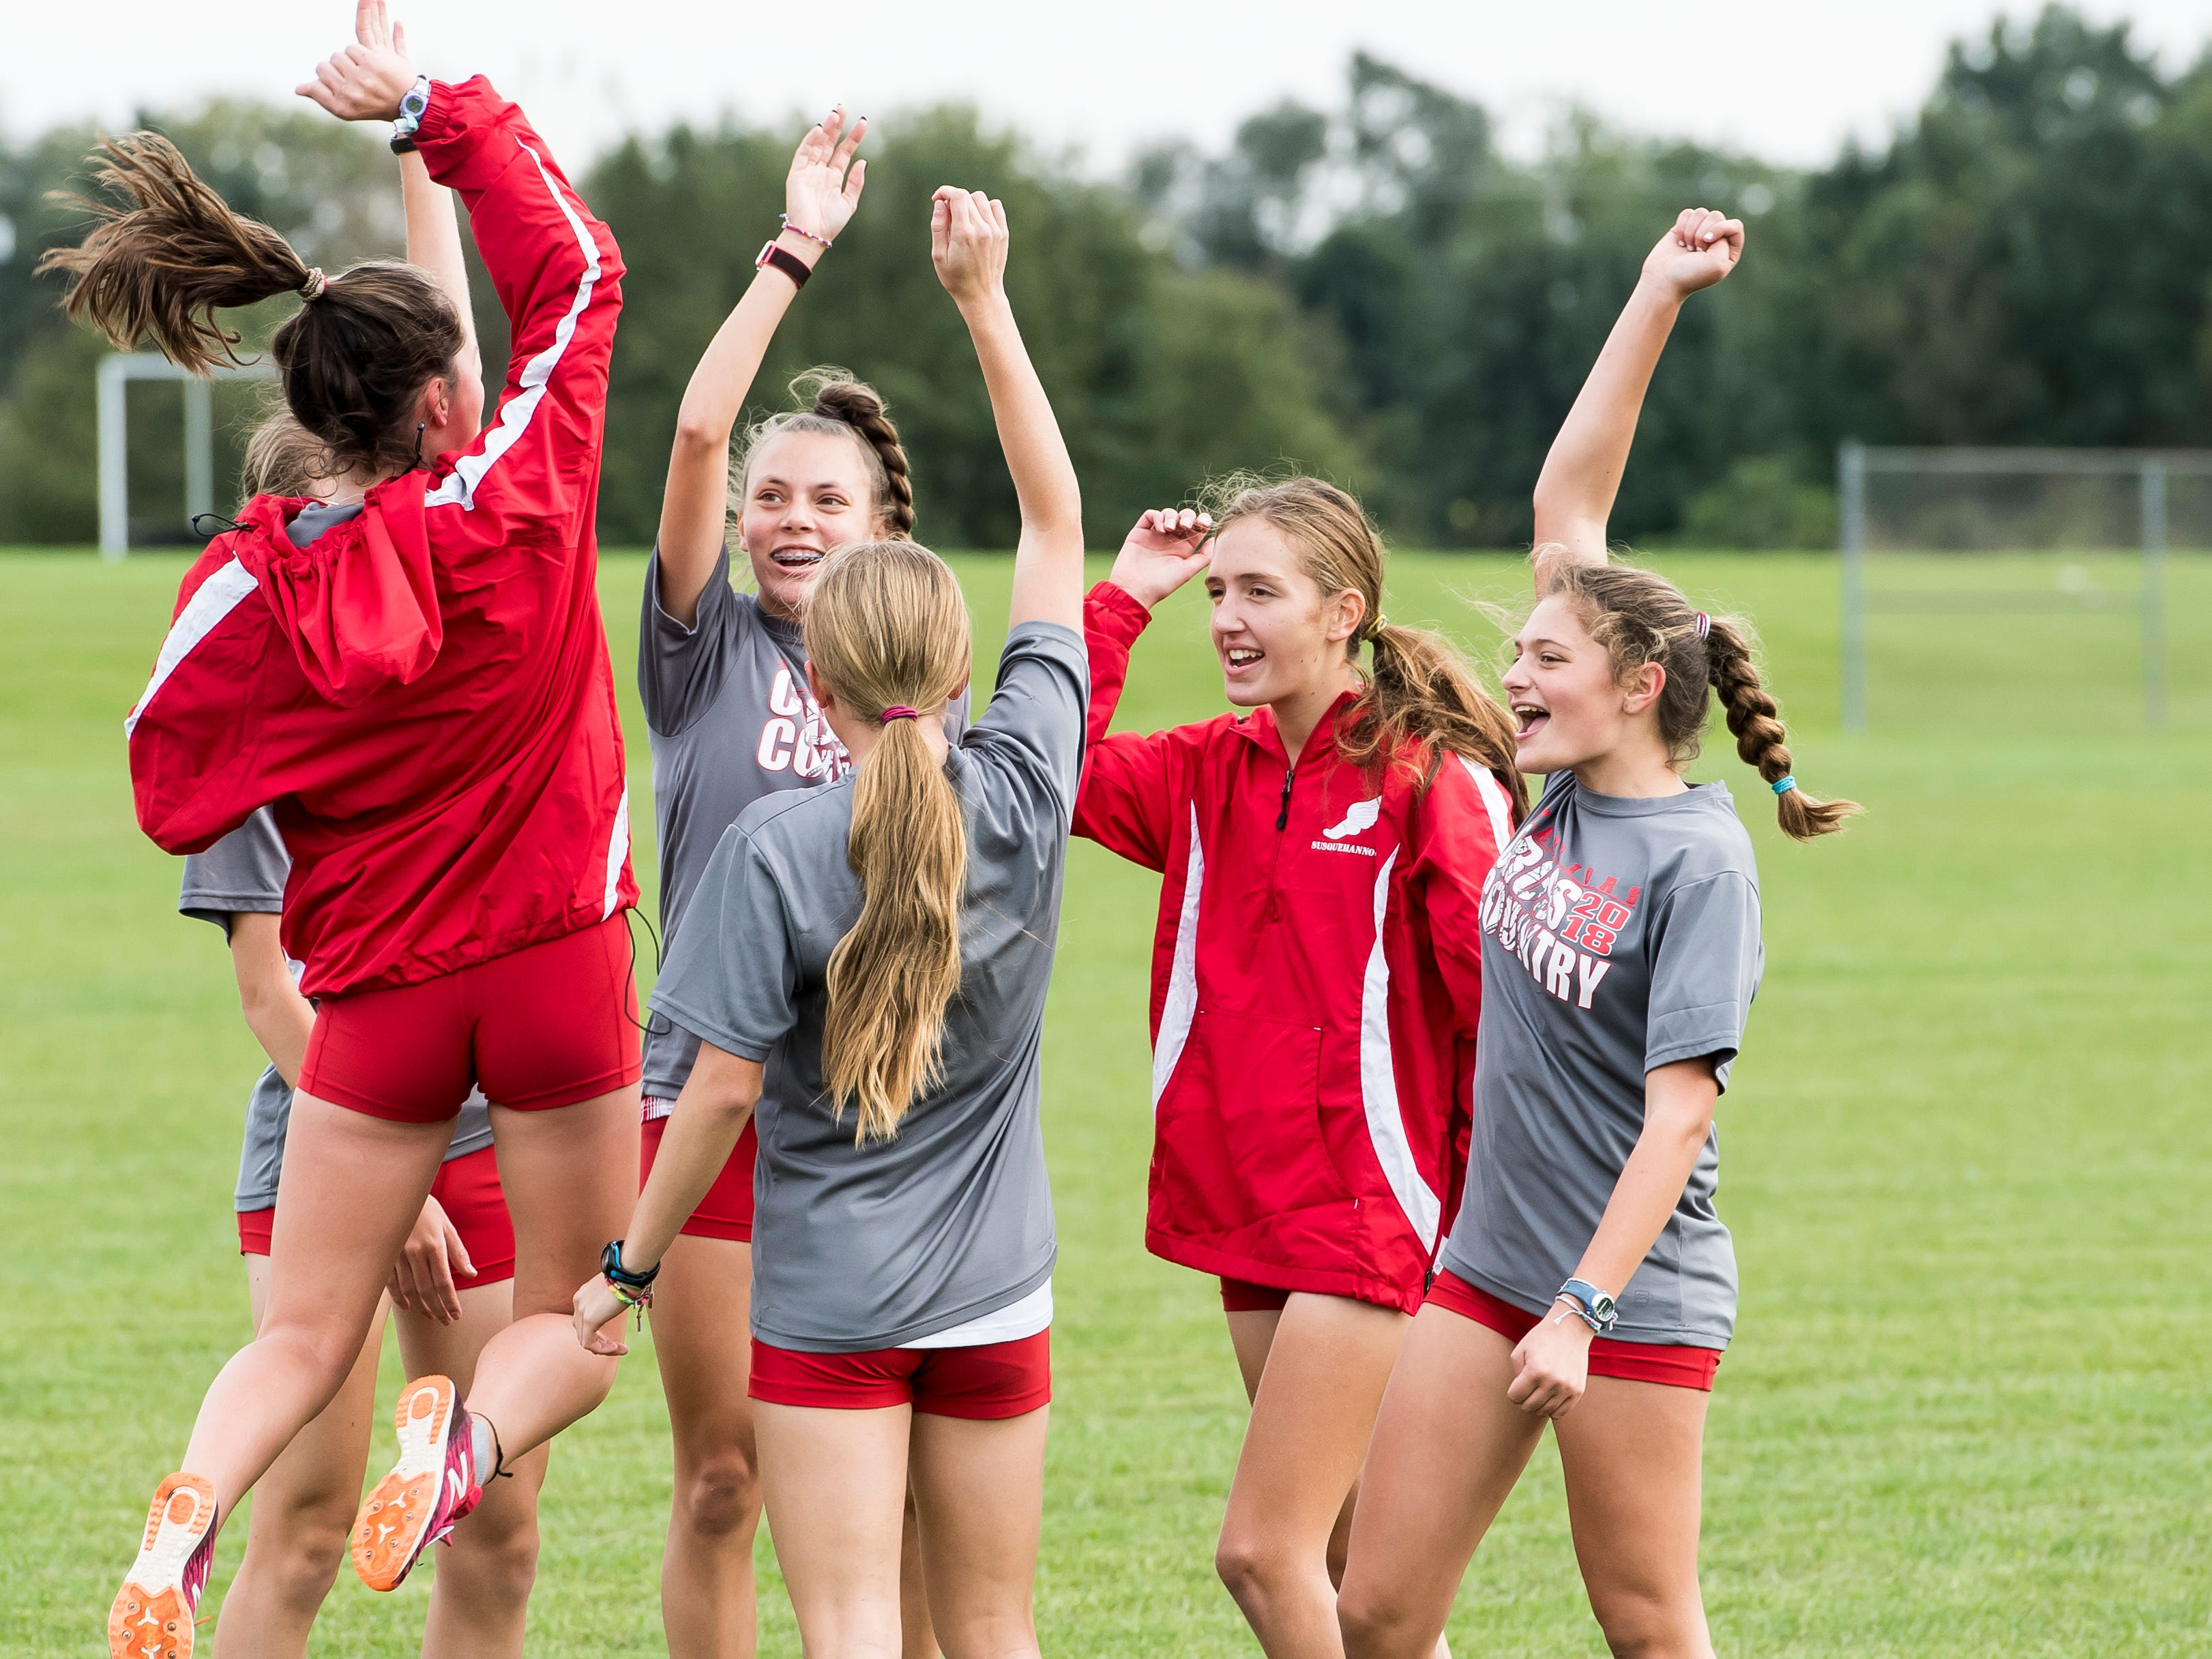 The Susquehannock Warriors girls' cross country team huddle up prior the YAIAA cross country championships at Gettysburg Area High School on Tuesday, October 16, 2018.